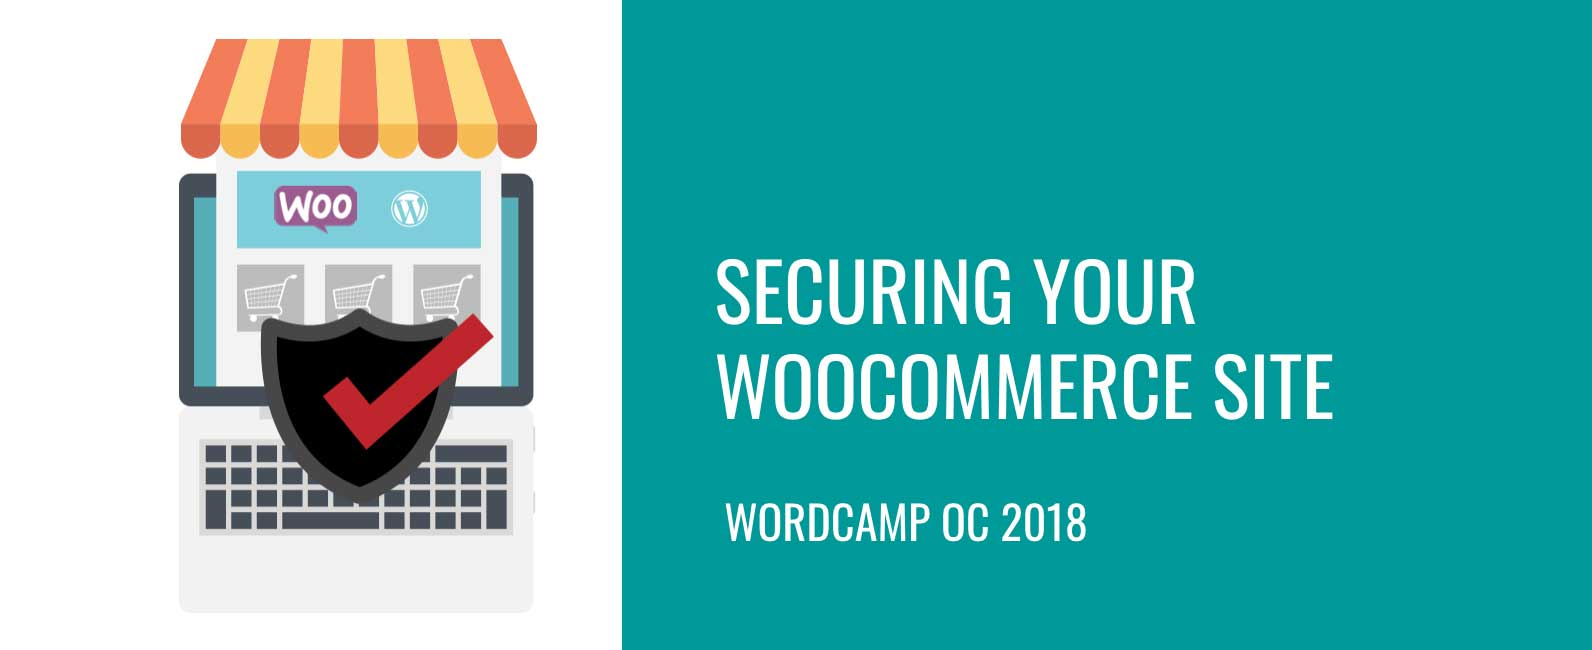 Securing Your WooCommerce Site